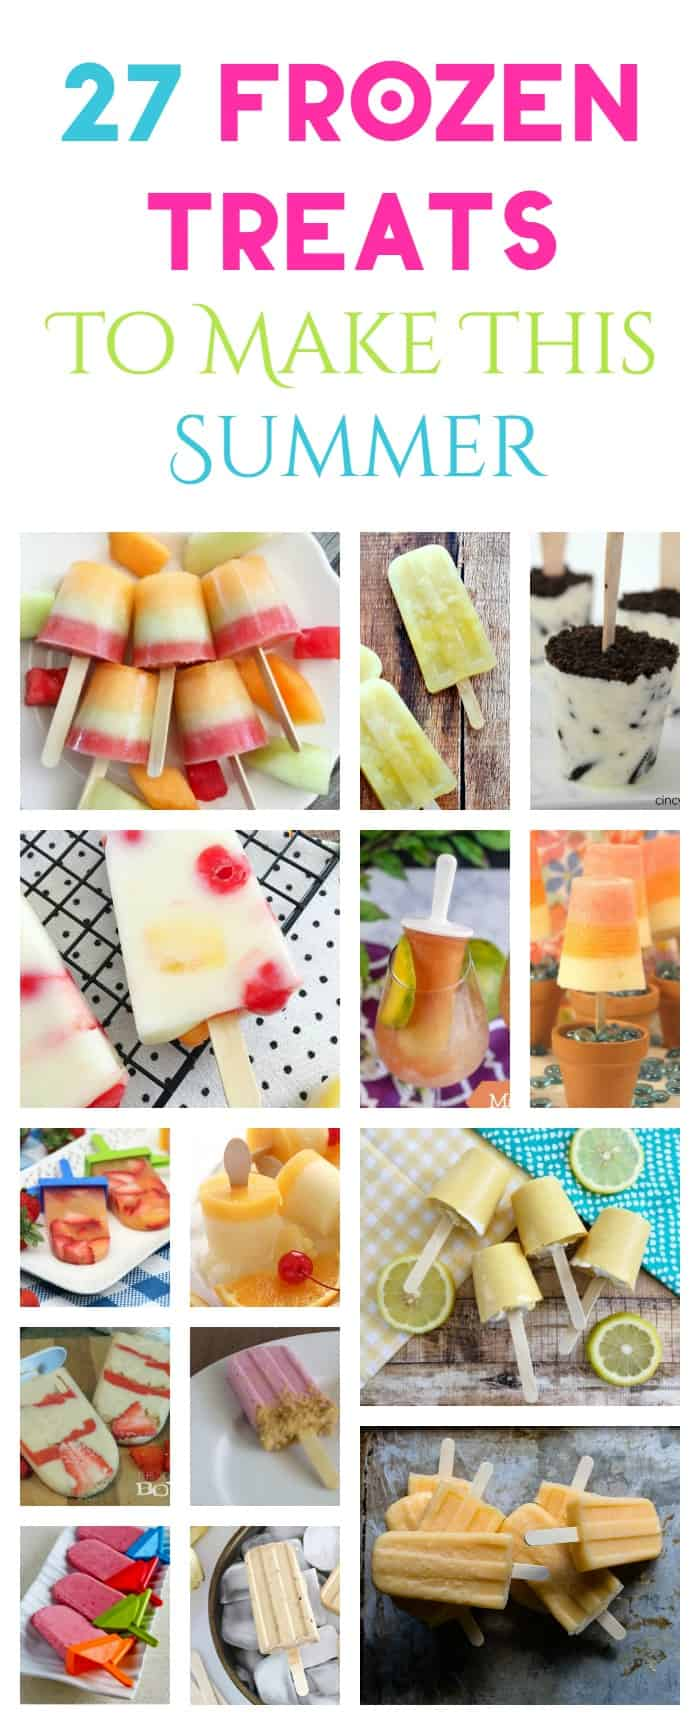 Nothing cools you off on a hot day better than a deliciously cold frozen ice pop. They're easy to make, totally portable and oh-so refreshing. Check out 27 of my favorite popsicles, ice-pops and frozen treats to make this summer!